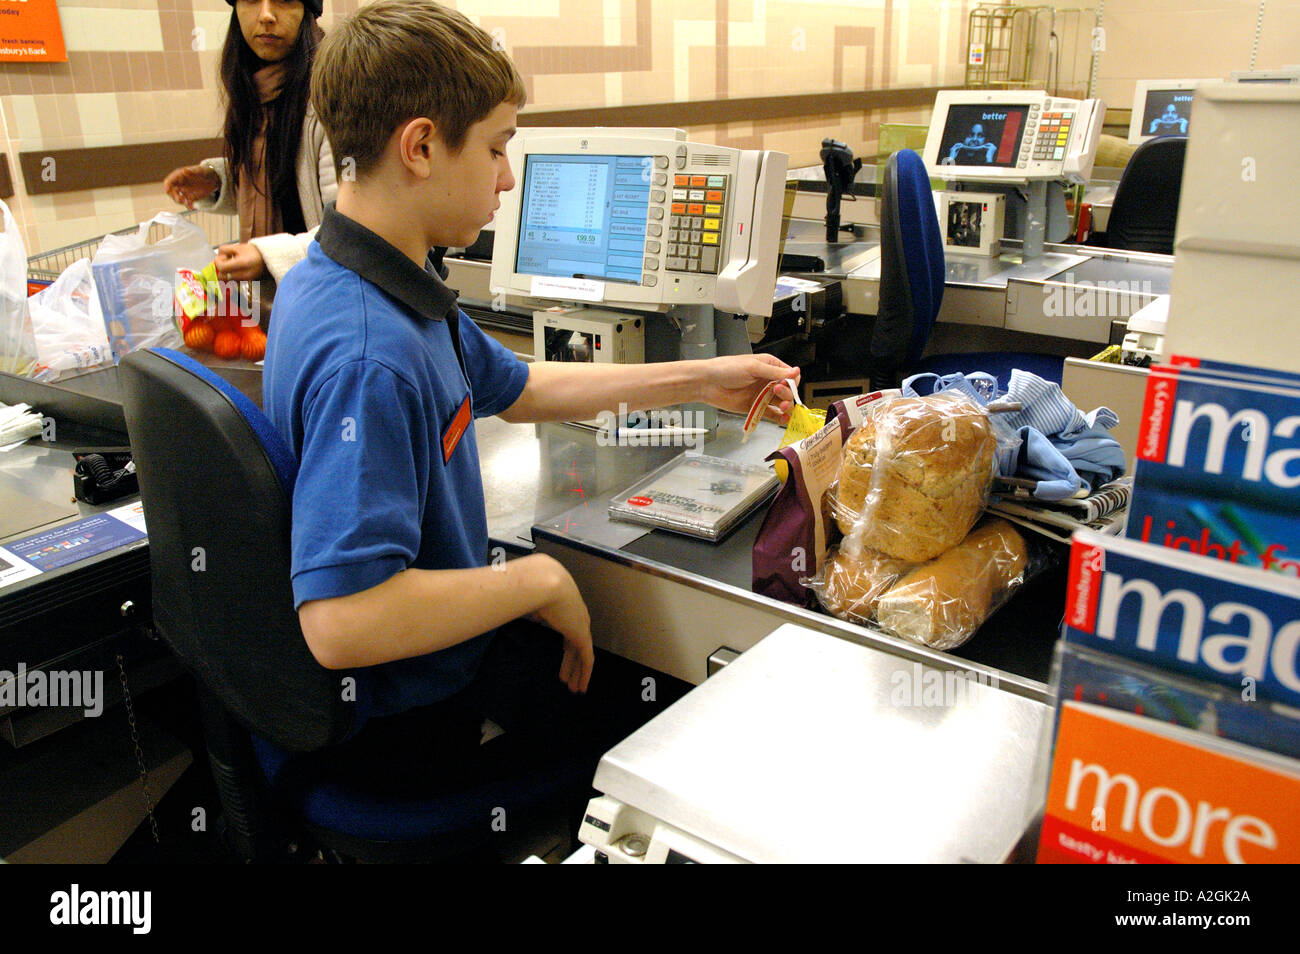 teenage youth working on supermarket till stock photo royalty stock photo teenage youth working on supermarket till